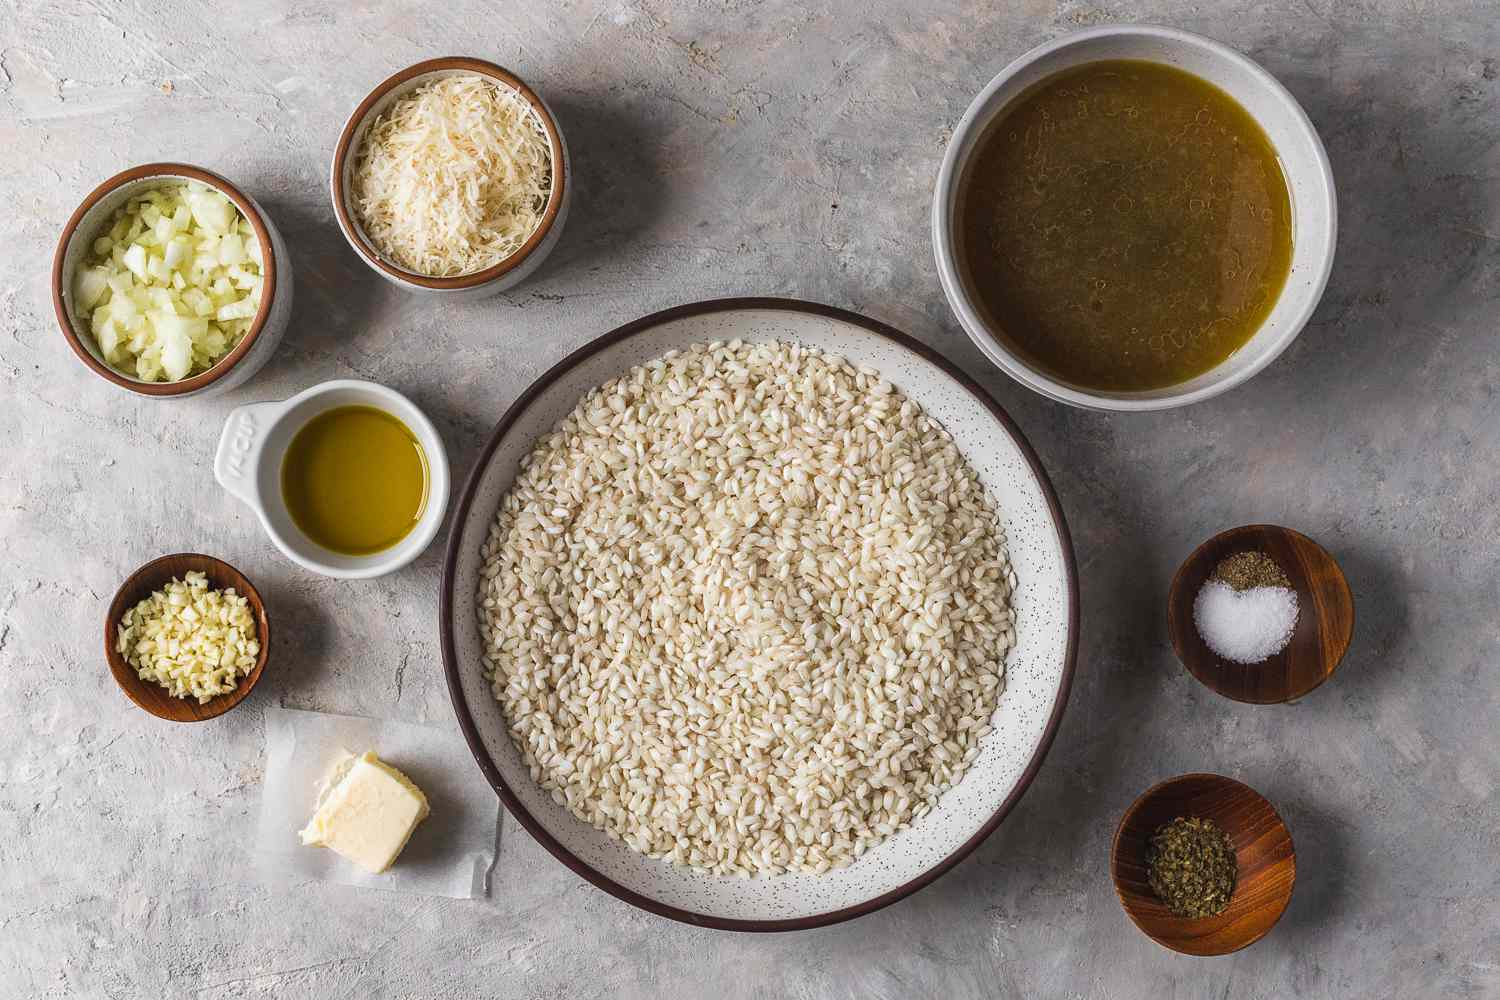 Ingredients for easy baked risotto